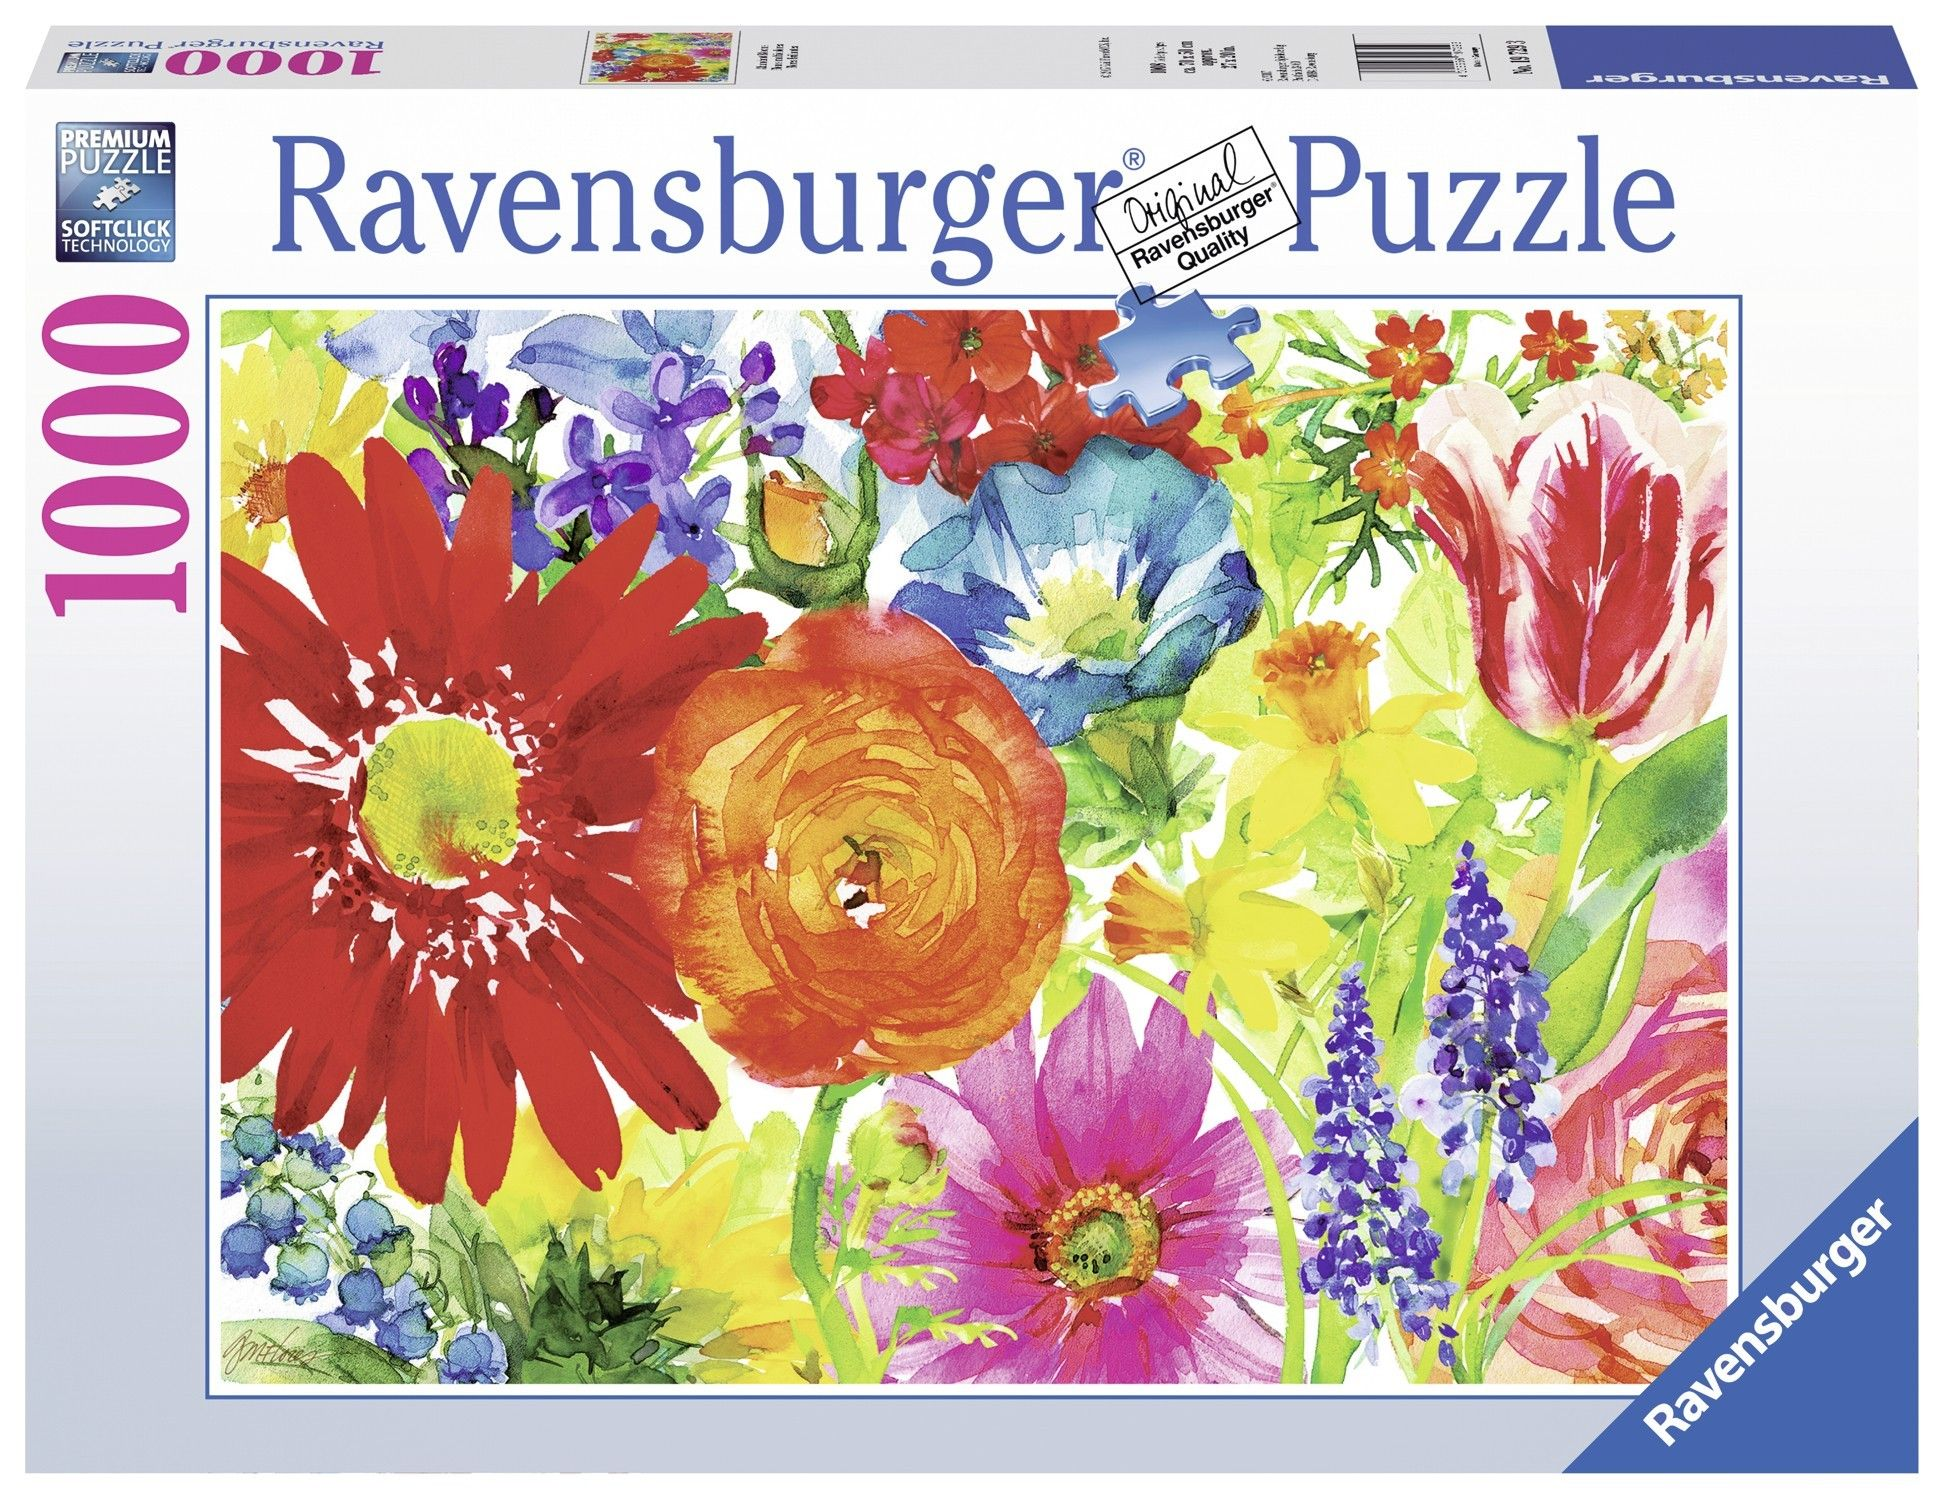 Ravensburger Puzzle 1000pc Abundant Blooms 1000 Piece Jigsaw